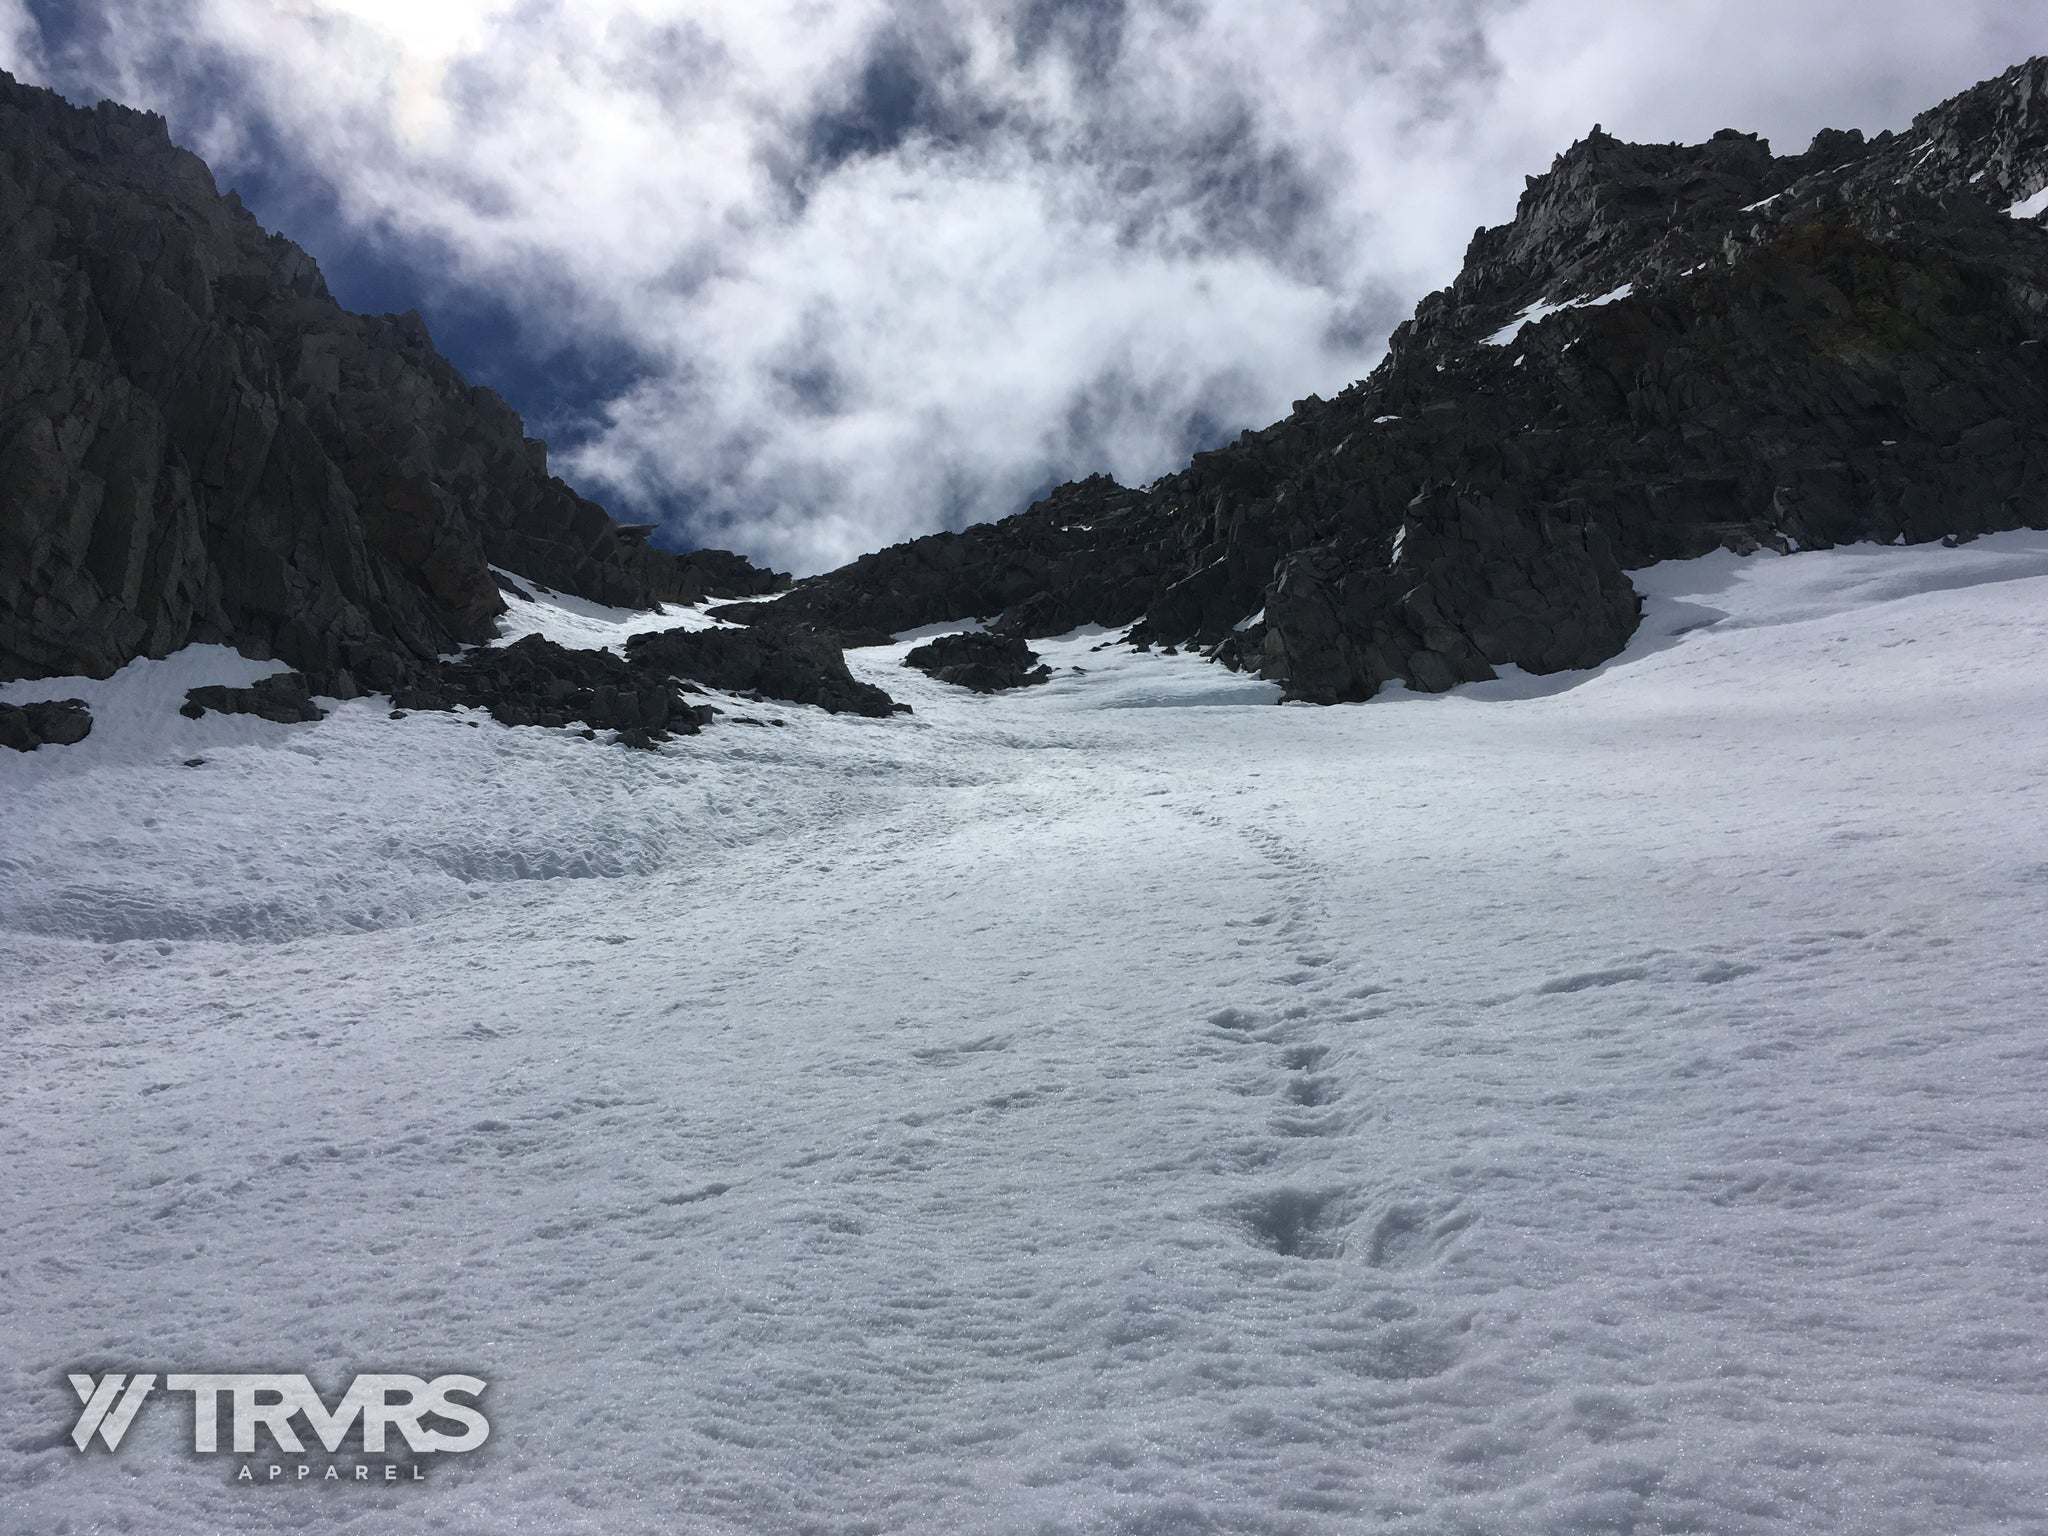 Glacier Notch Approach via Palisade Glacier - Mount Sill | TRVRS APPAREL